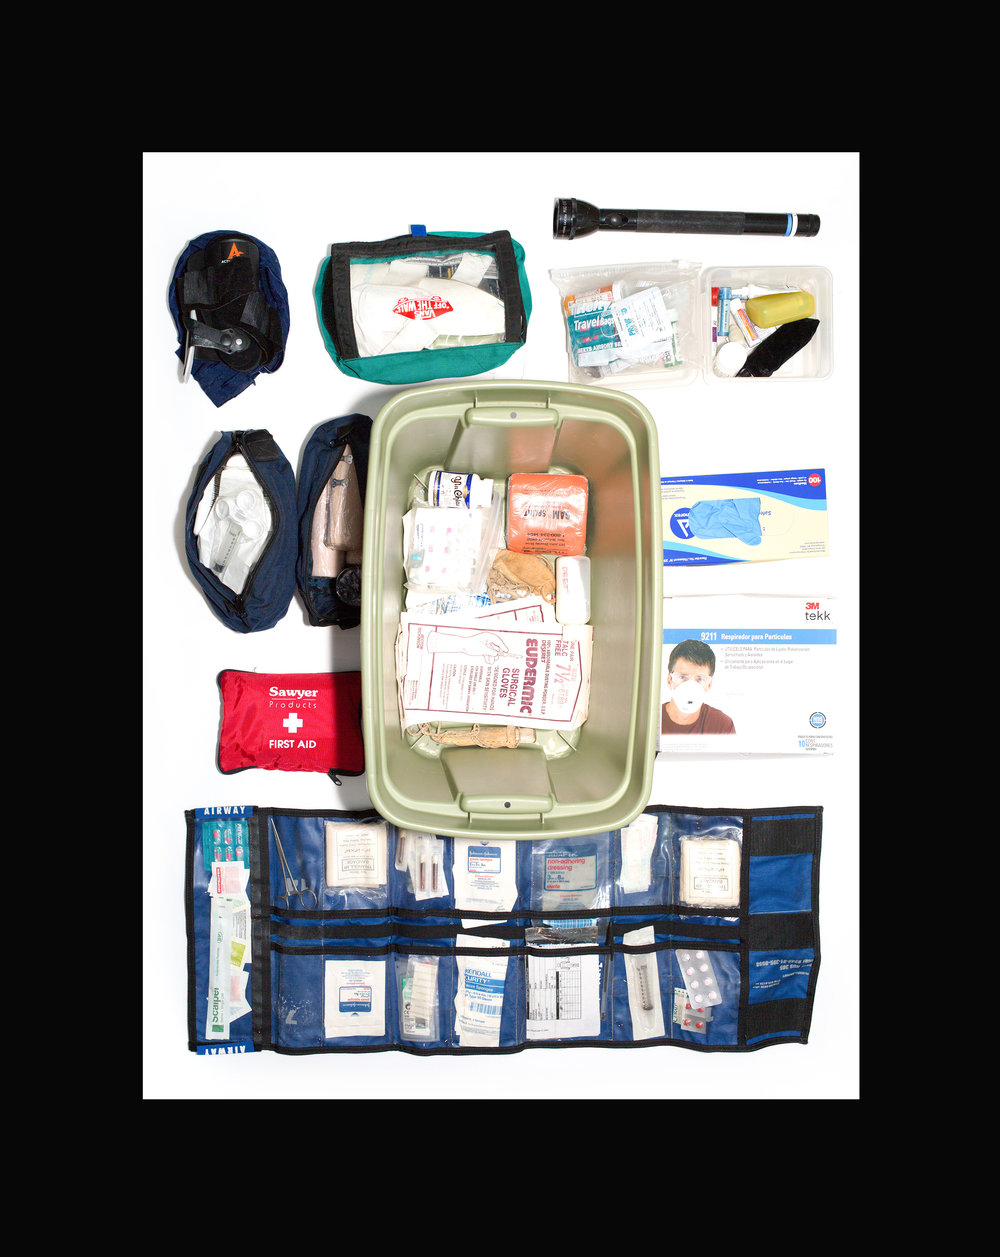 Shahnnen's Medical Supplies